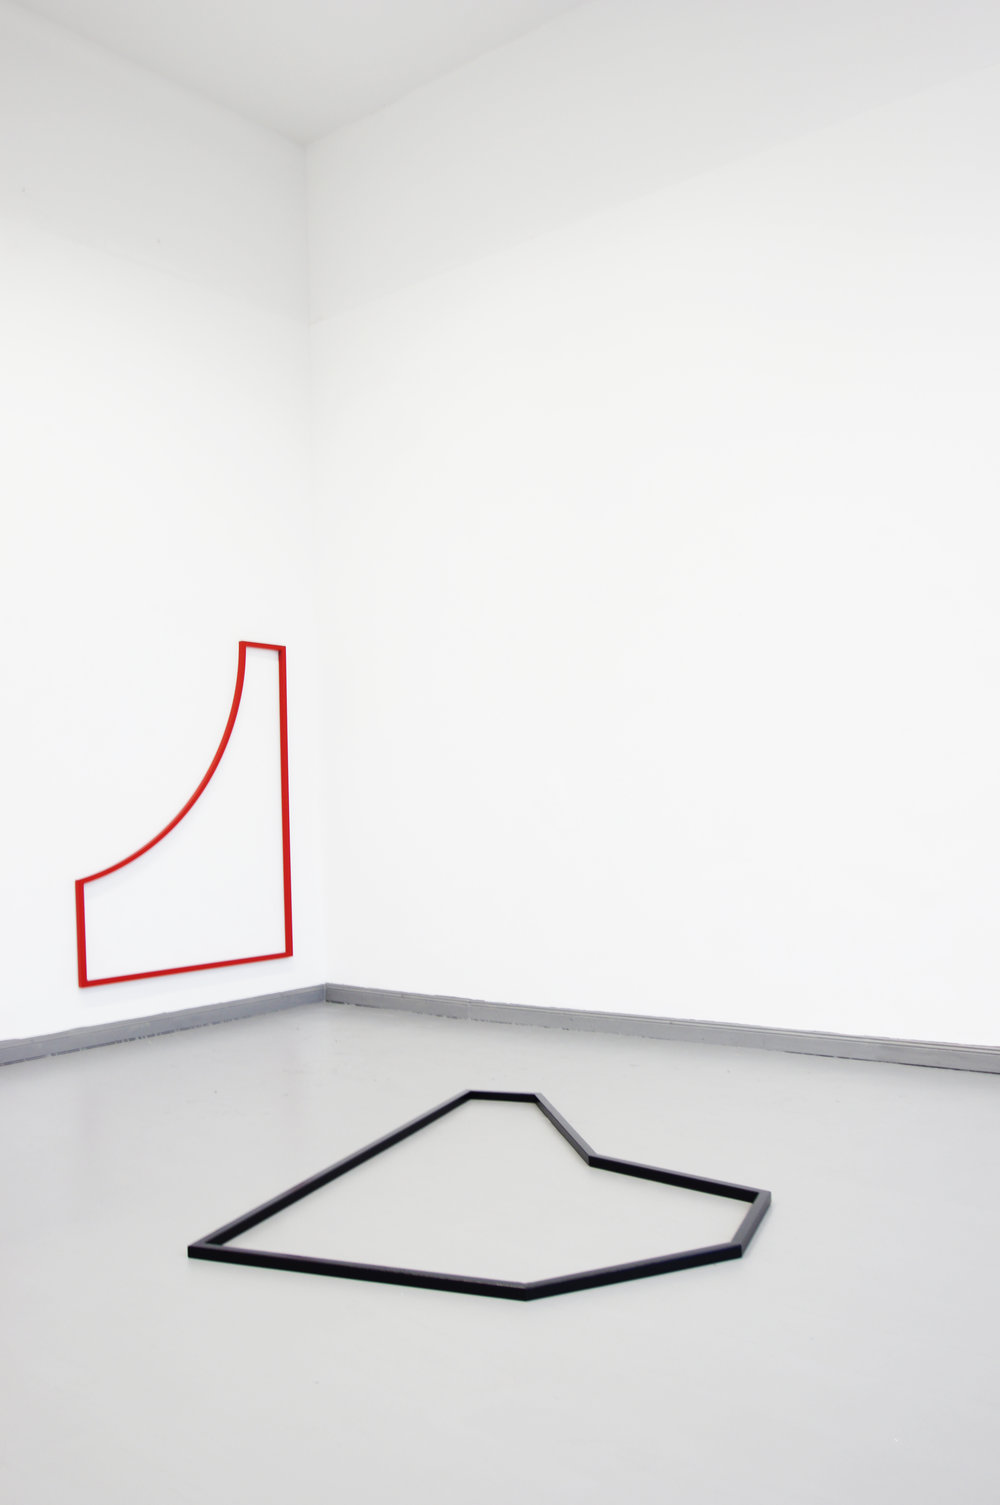 PLAYGROUND // Installation view  2015 // each 170cm x 130cm  steel and varnish